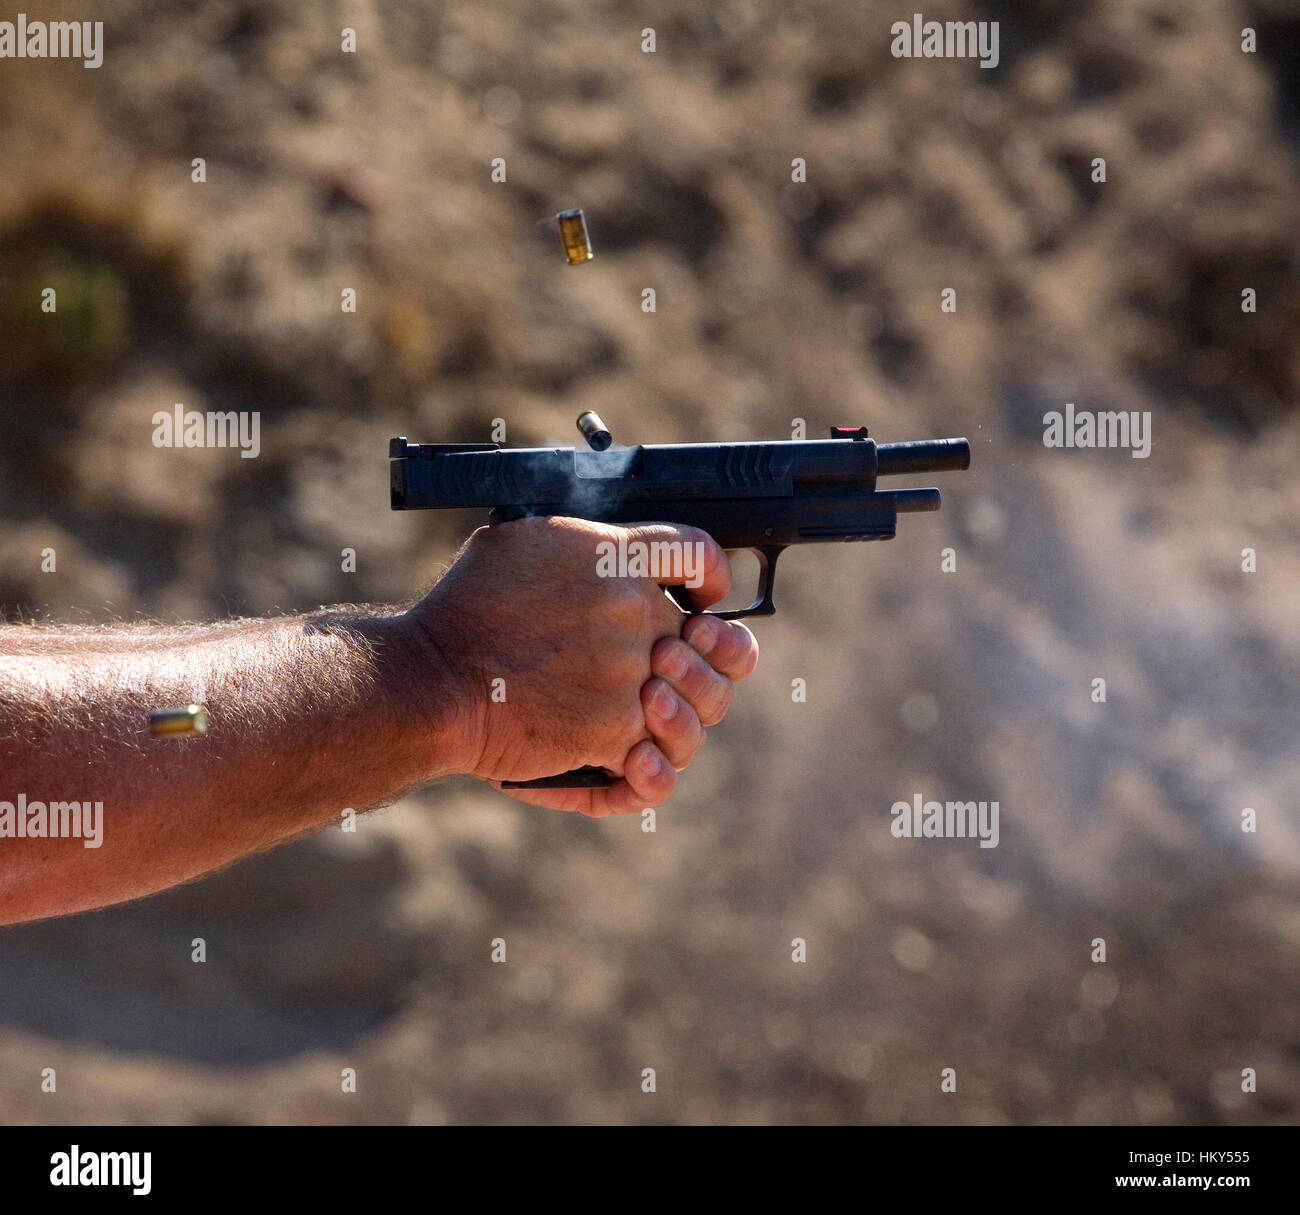 Handgun this is ejecting the third empty shell from fast paced shots - Stock Image